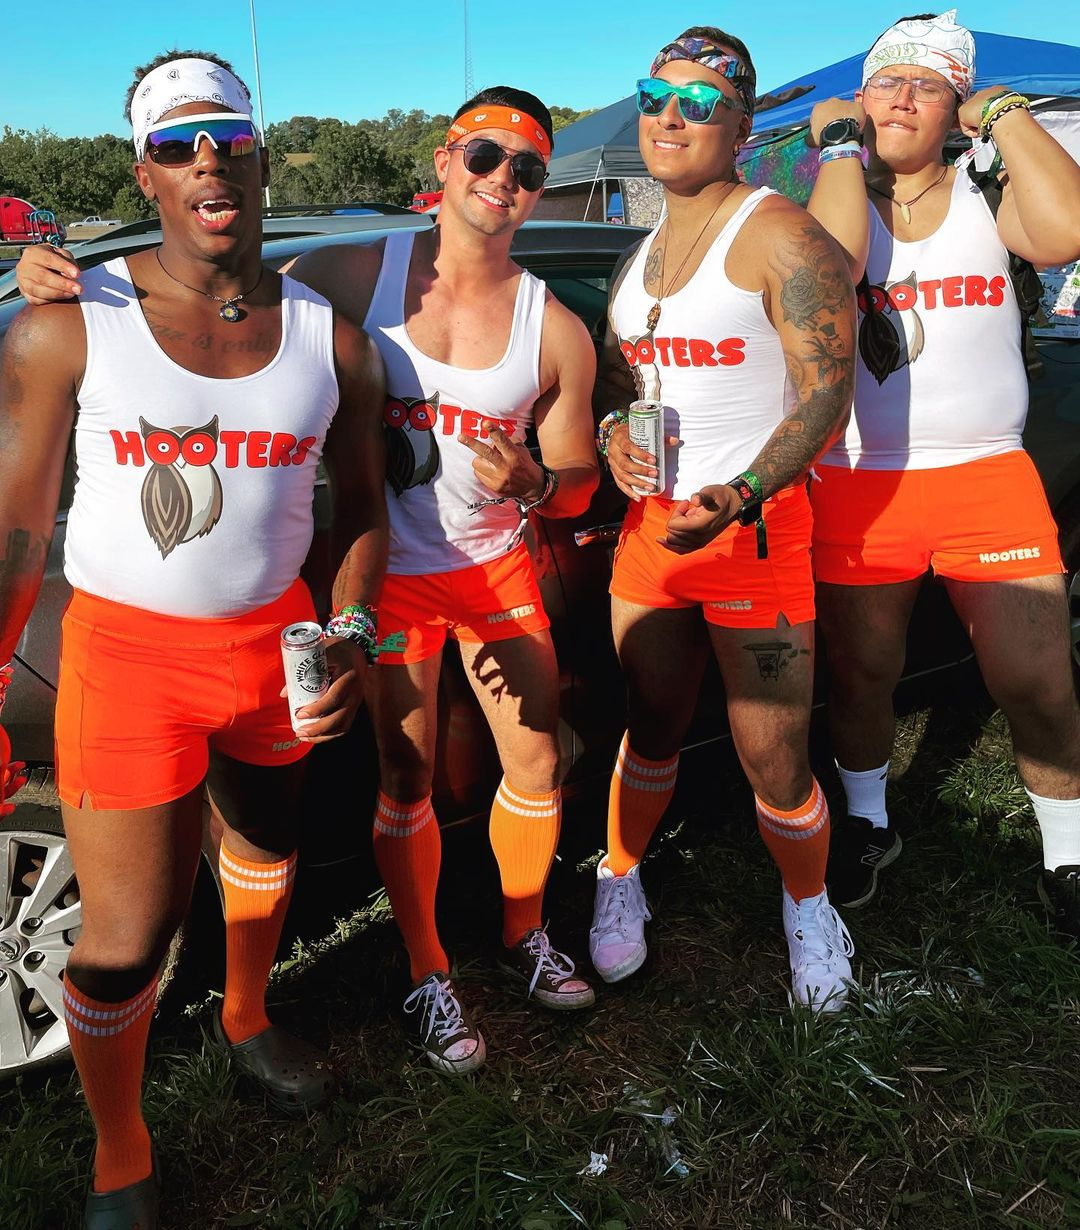 Funny hooters Halloween costumes for 4